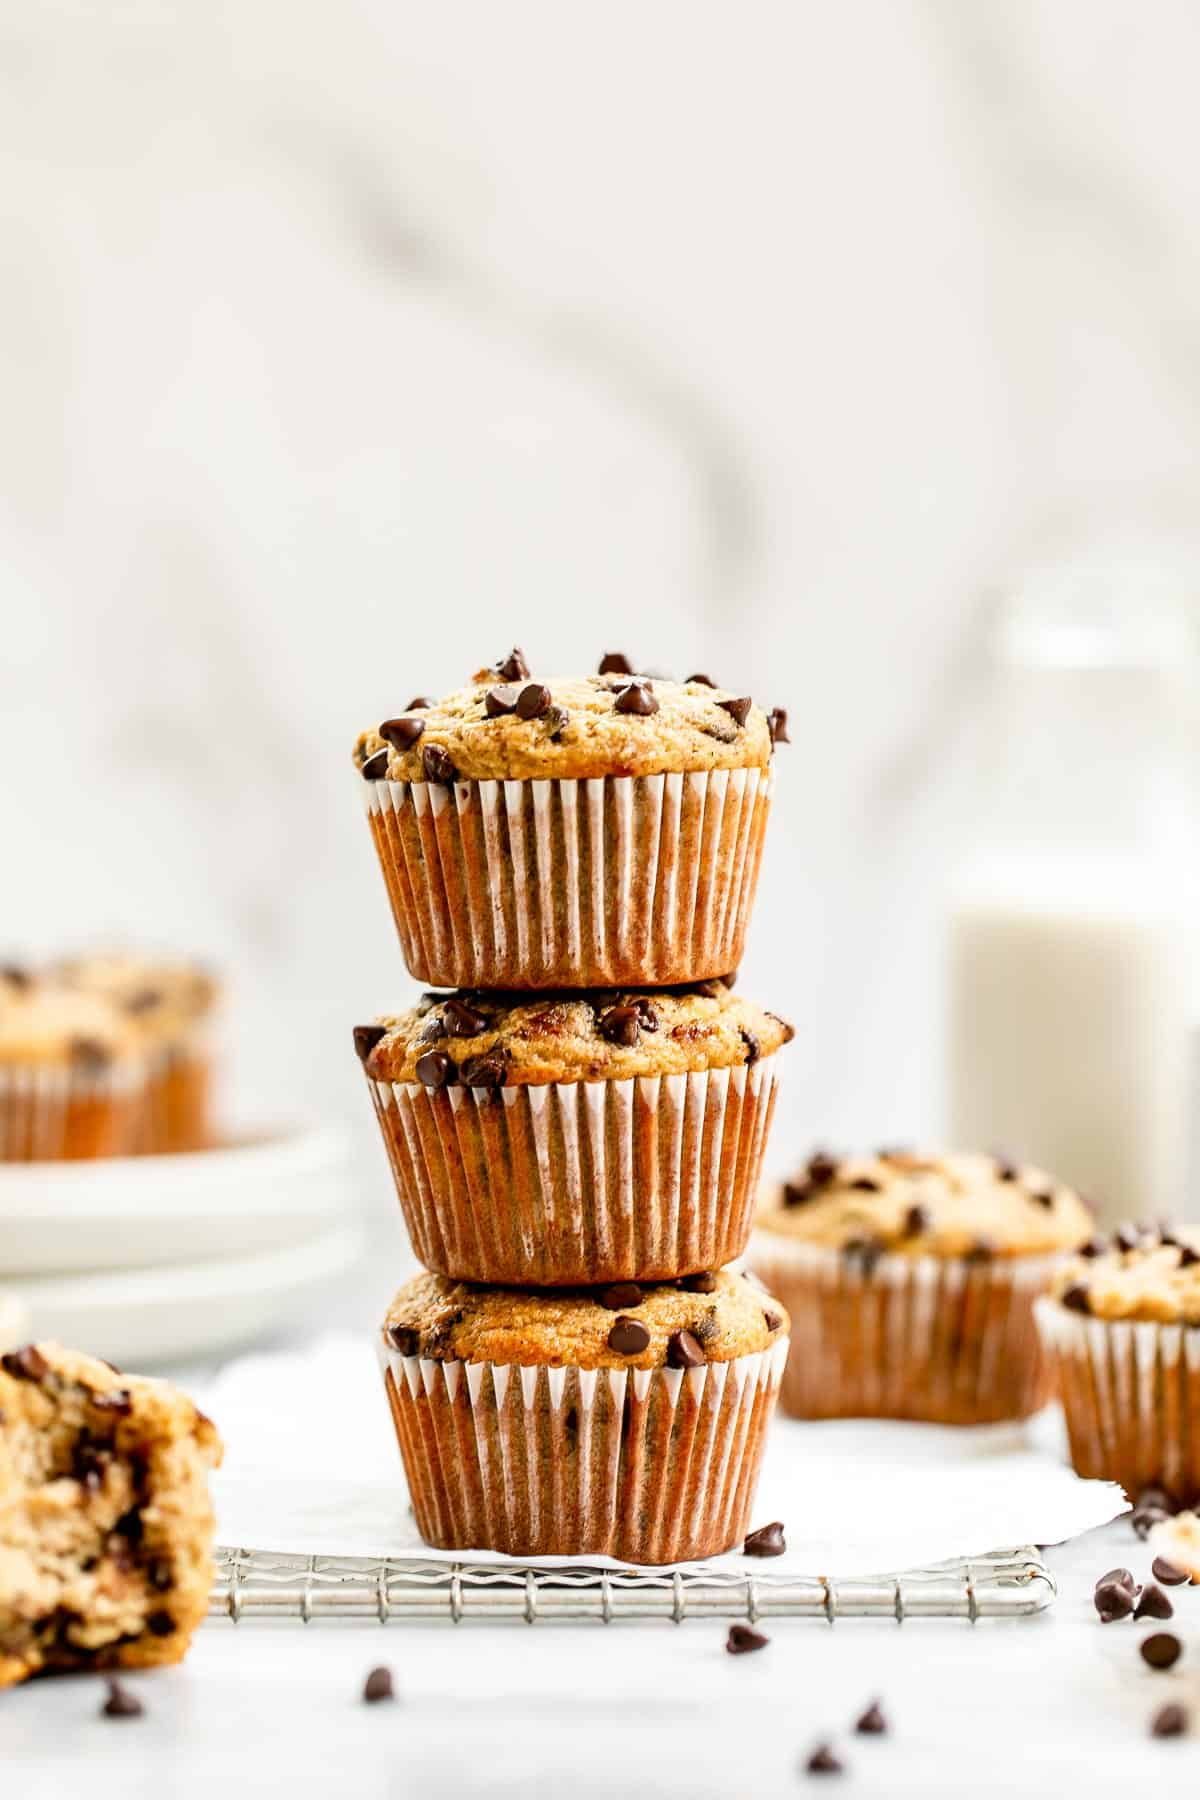 Three almond flour banana muffins stacked on each other with milk in the back.